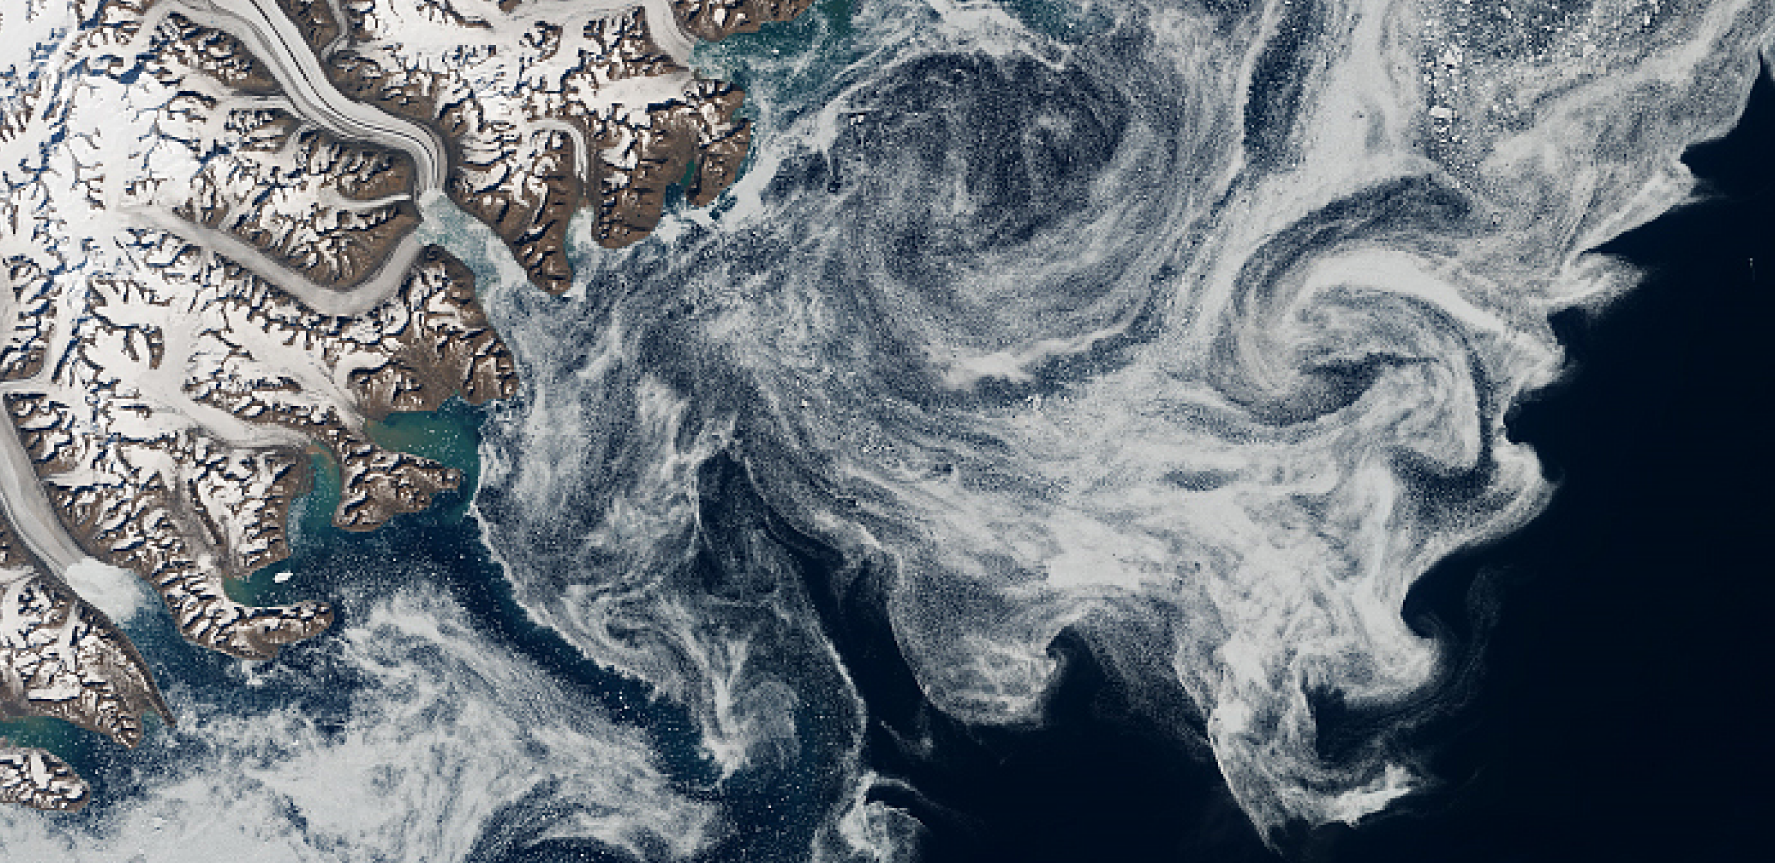 Satellite image of a frozen river meeting the sea, with sea ice floating across the Denmark Strait